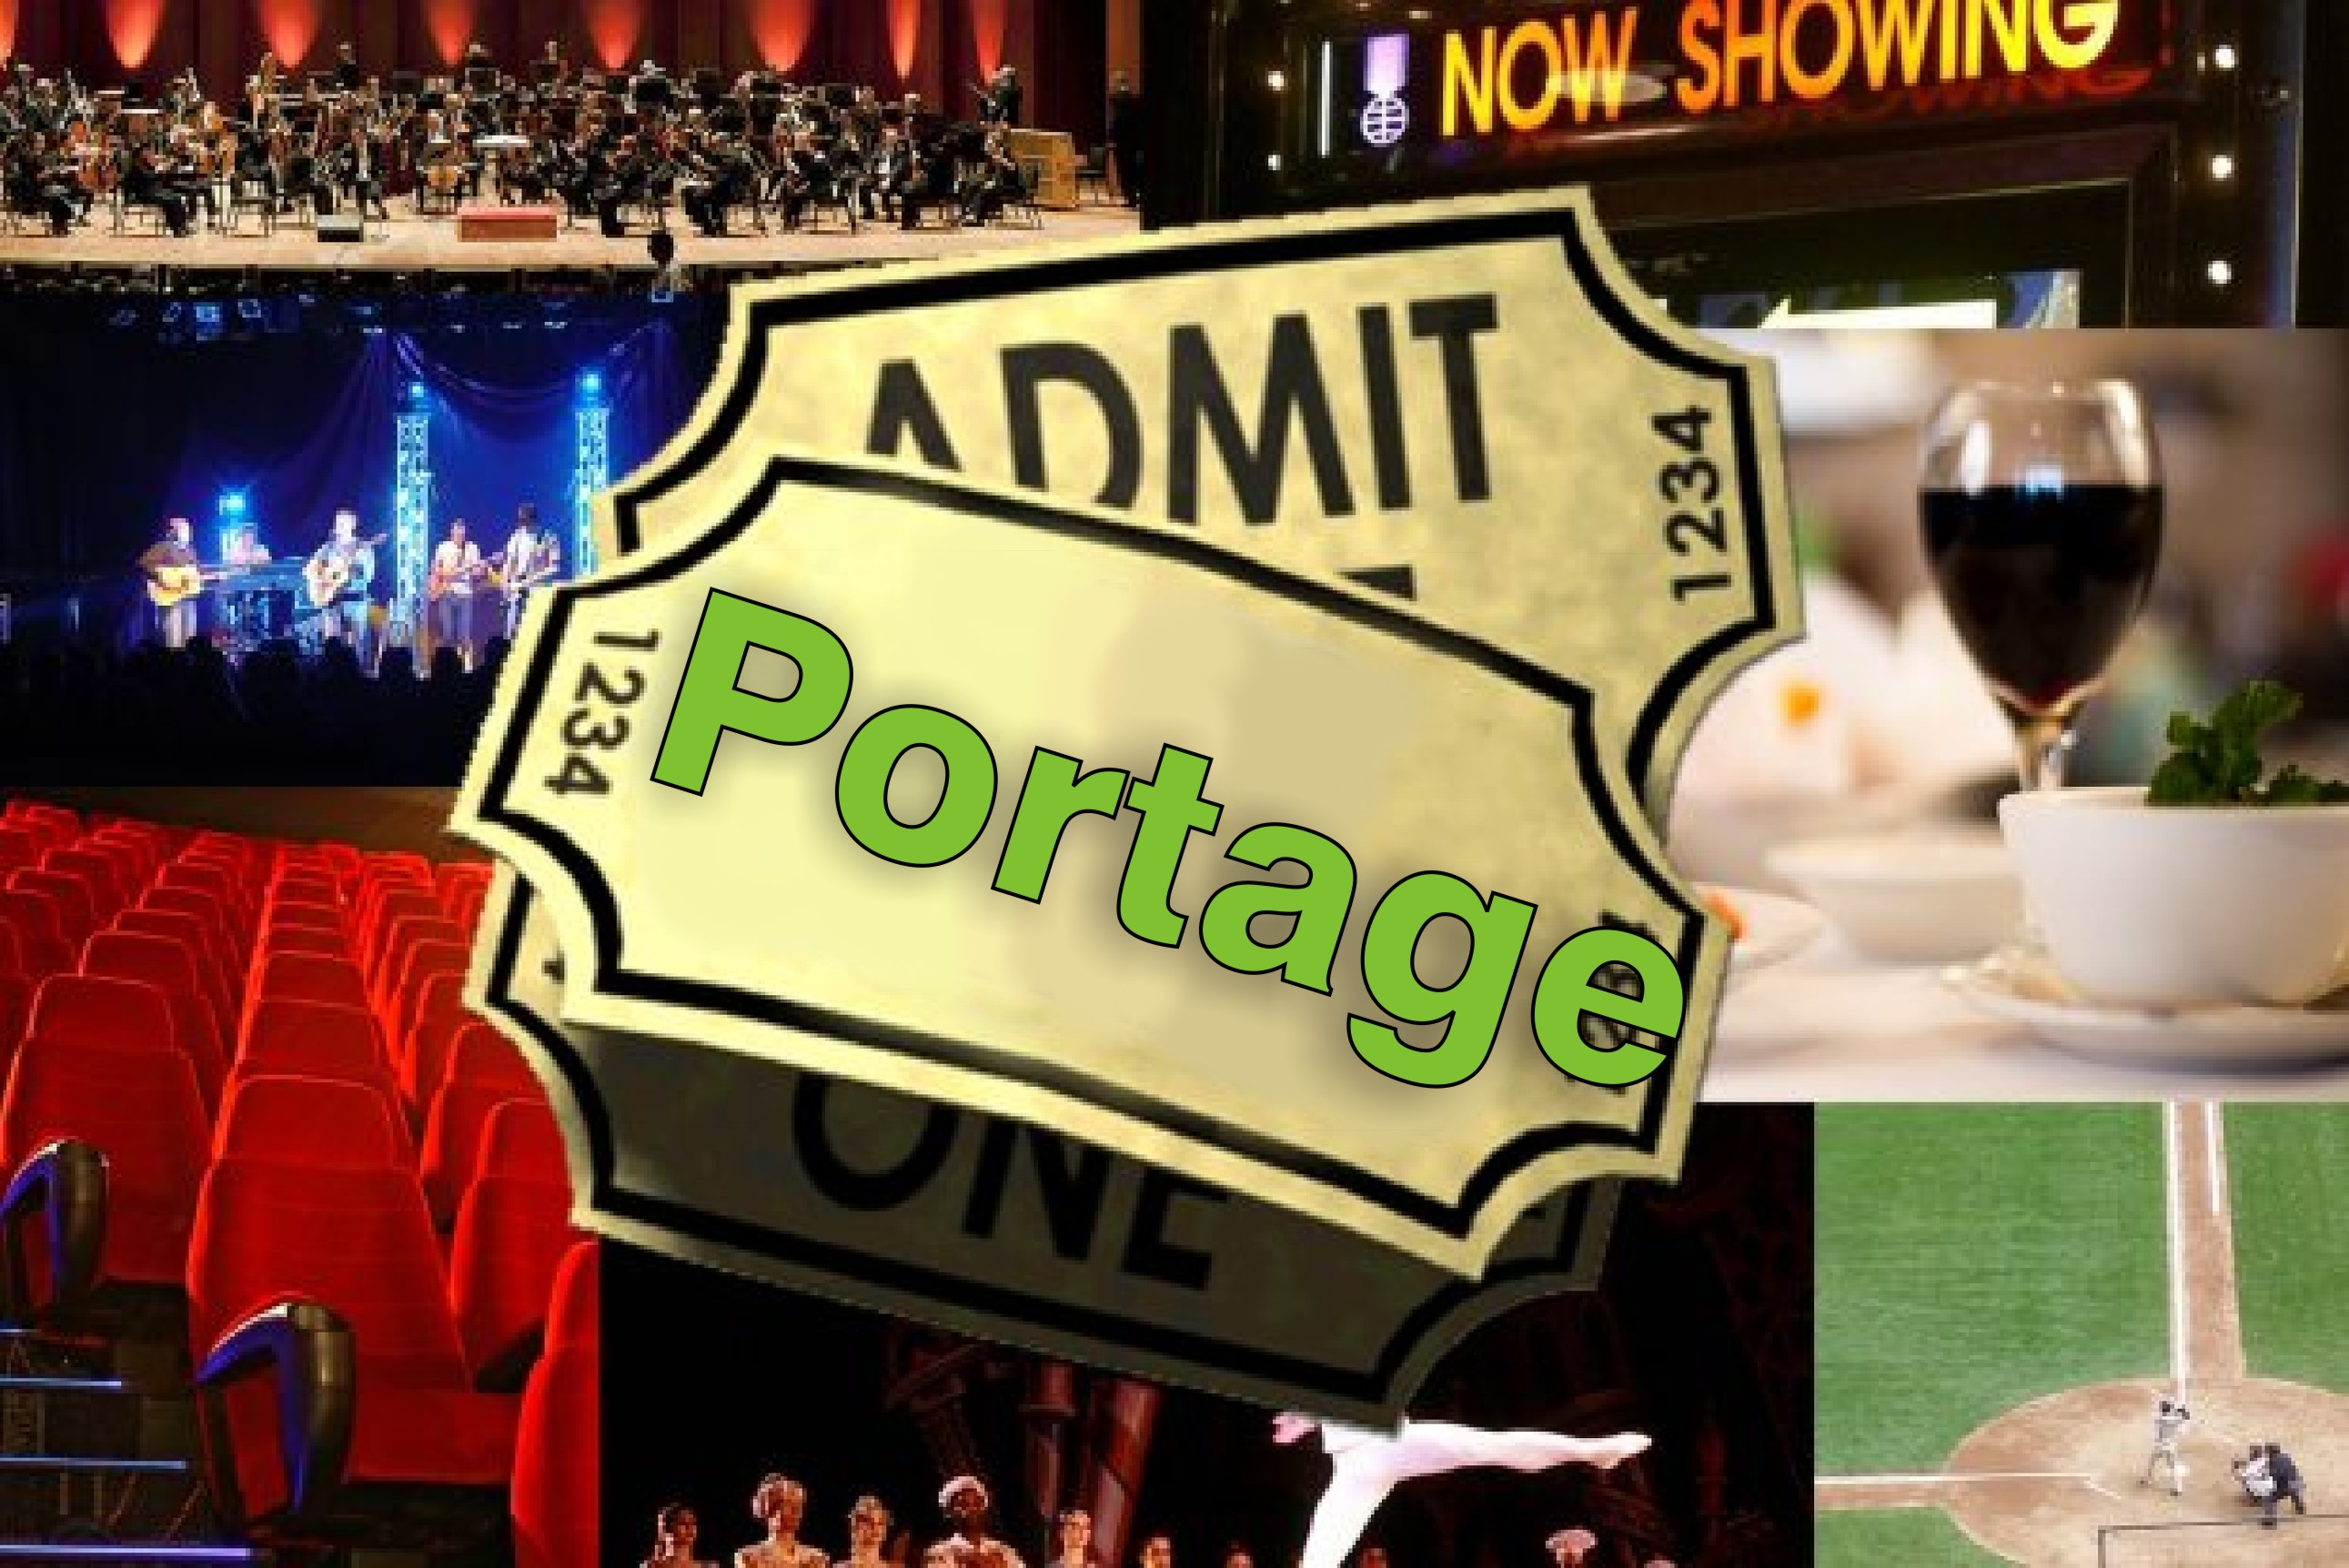 things to do festivals events calendar portage indiana